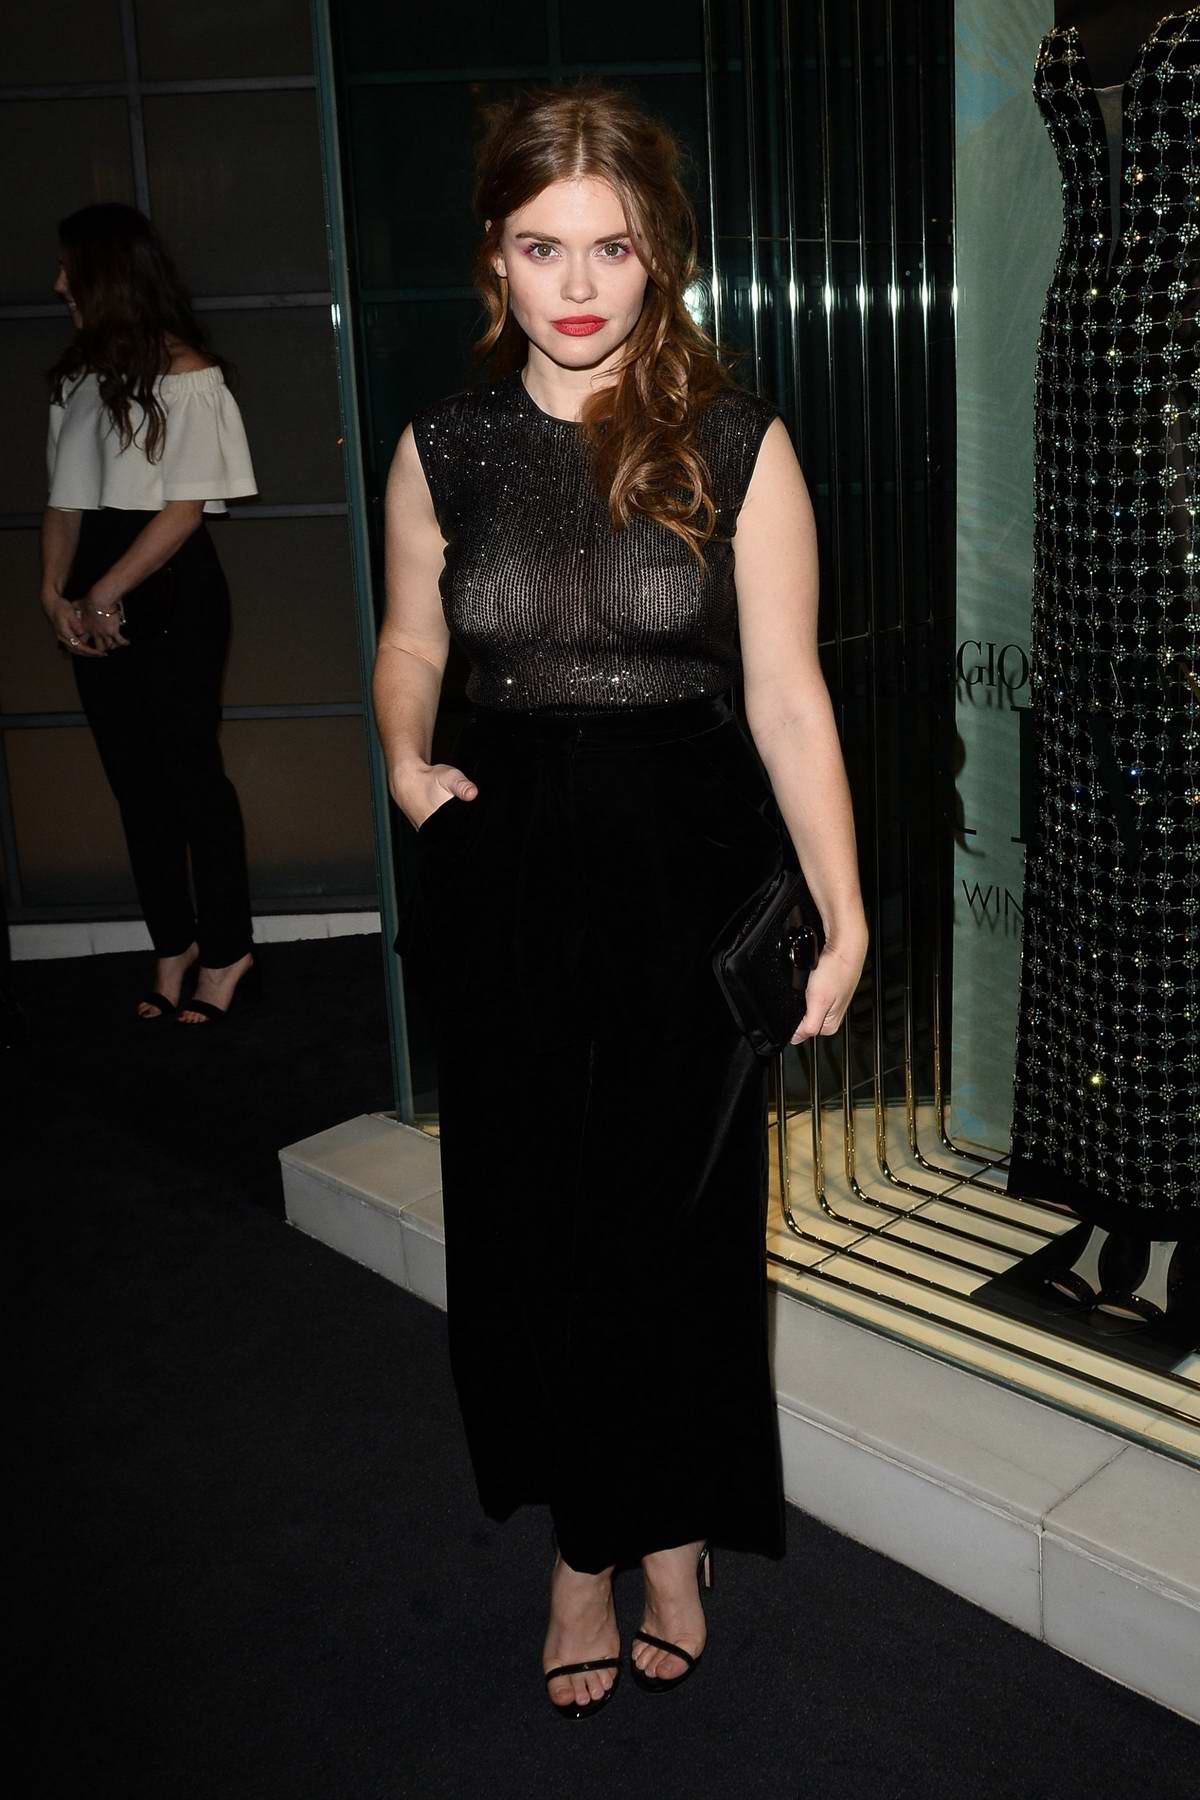 Holland Roden attends the Giorgio Armani Pre-Oscar Party in Los Angeles